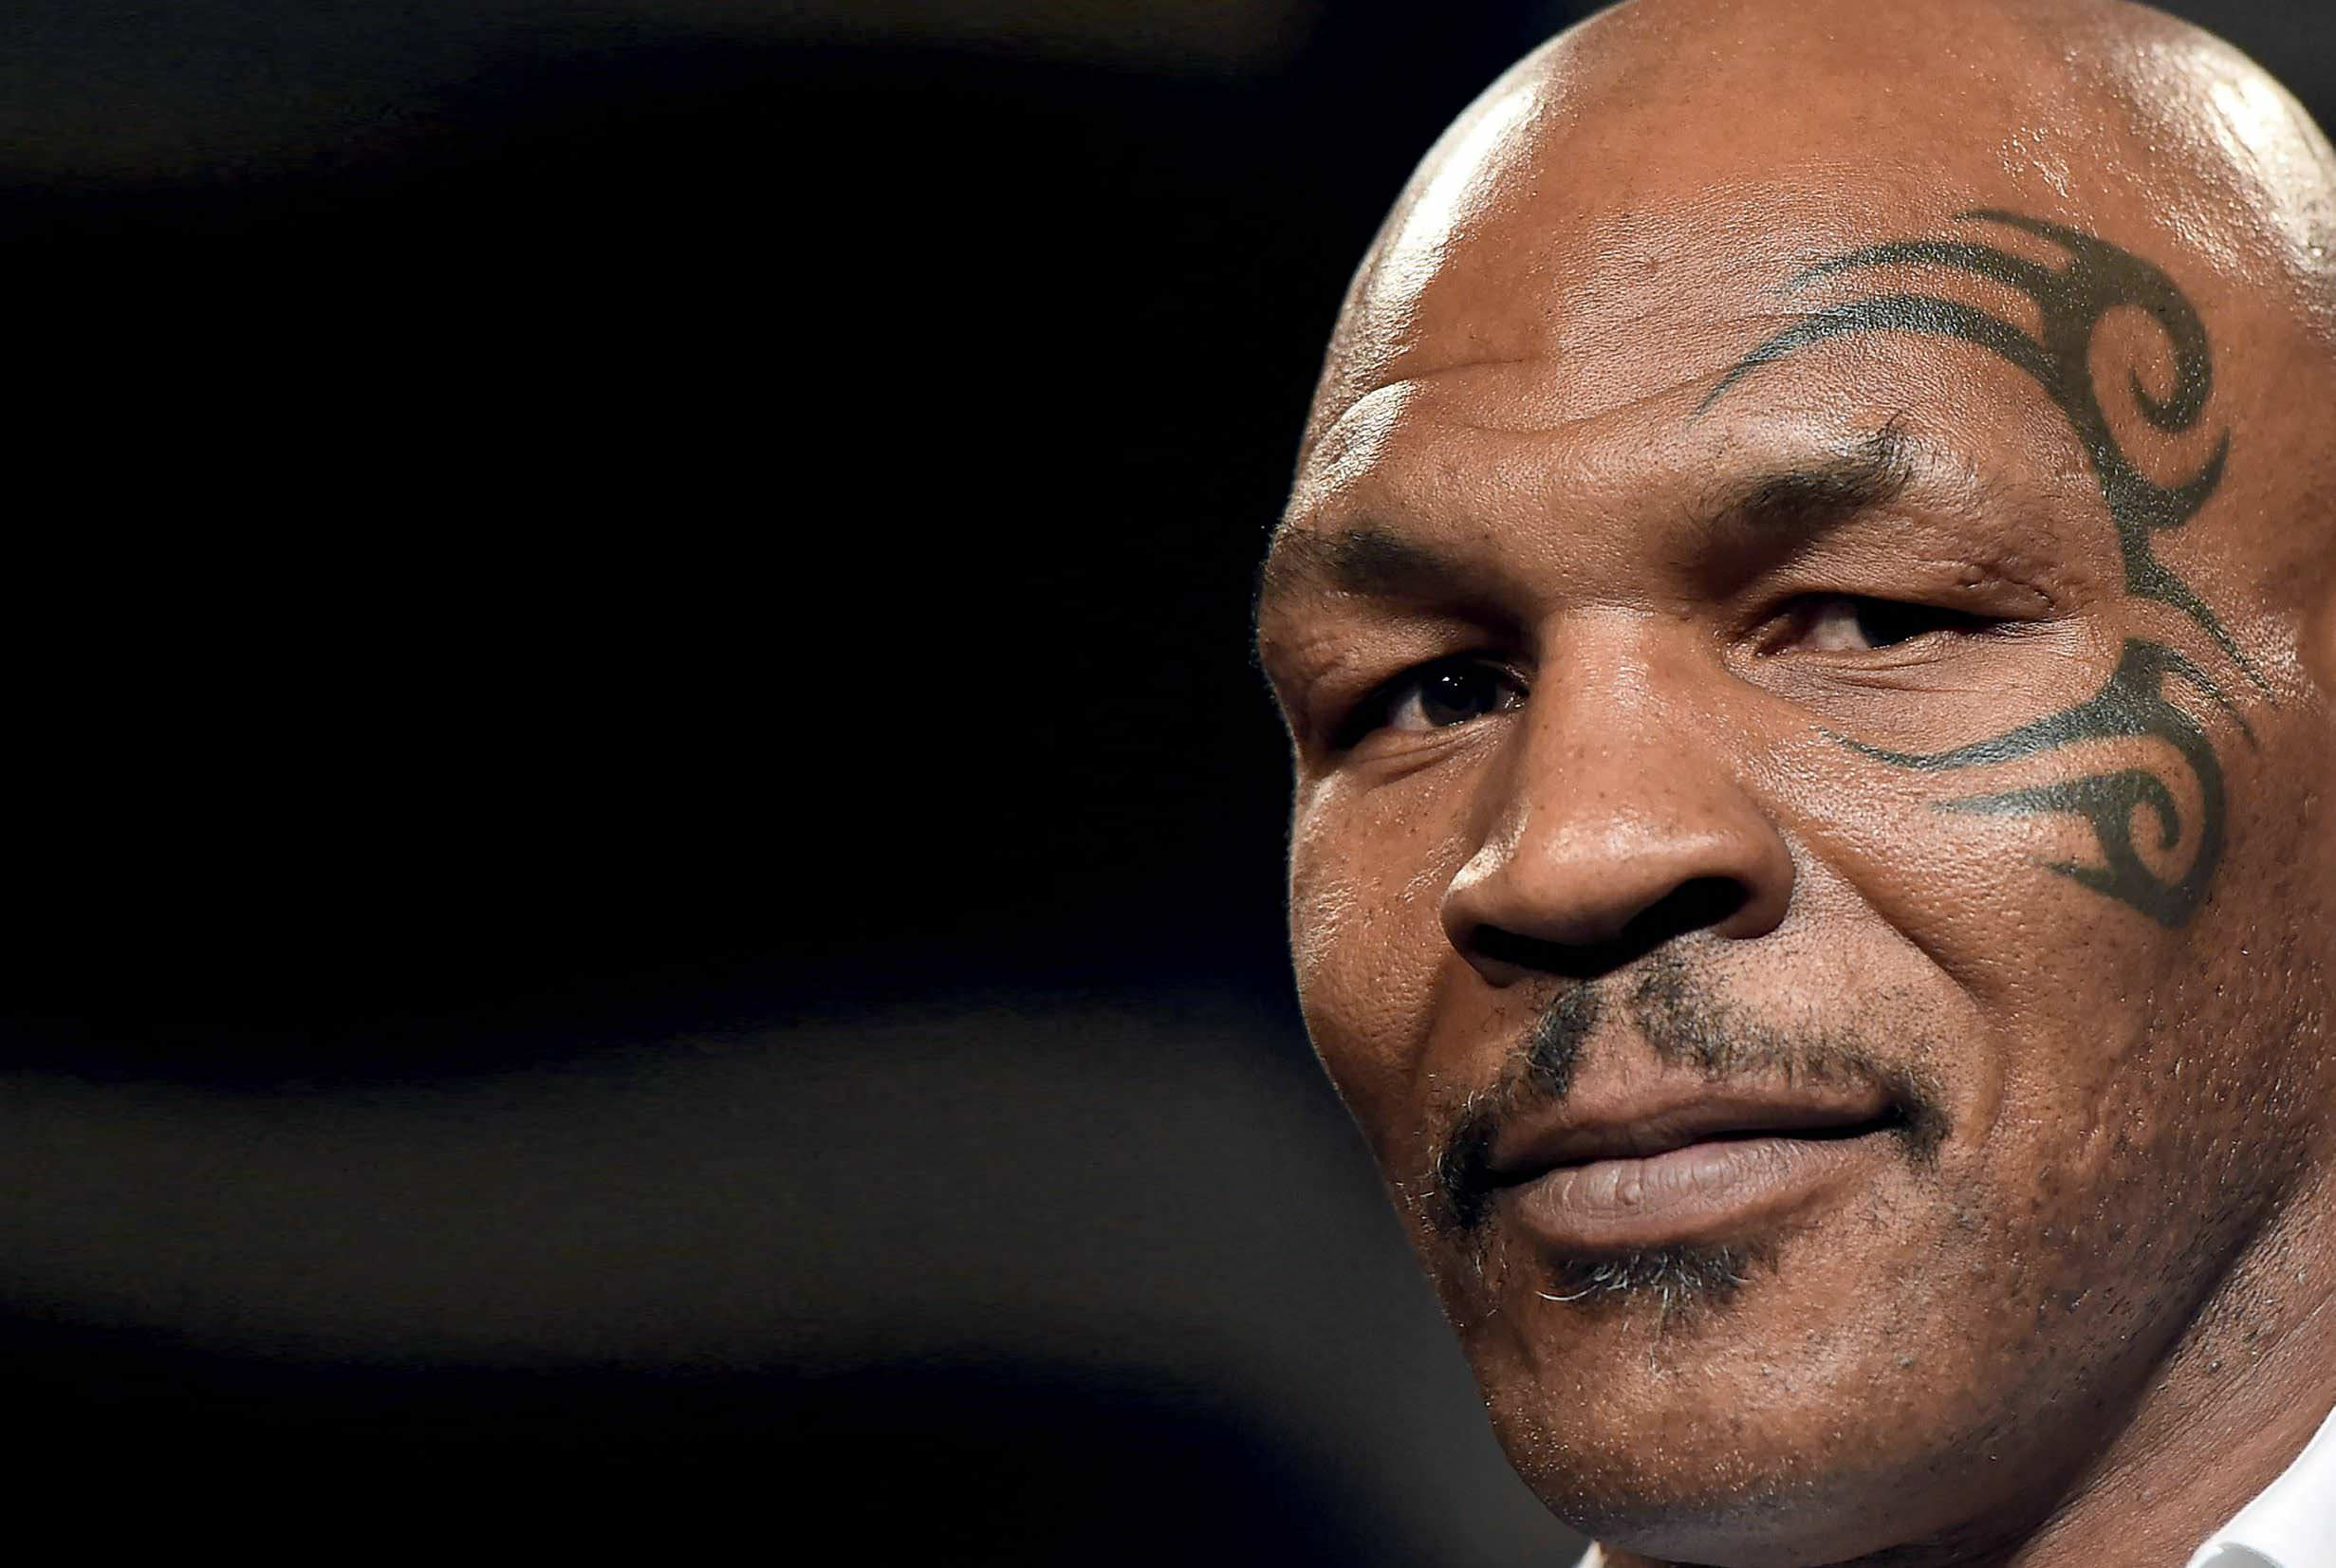 What Happened When a Bodybuilder Tried Mike Tyson's Training Regime